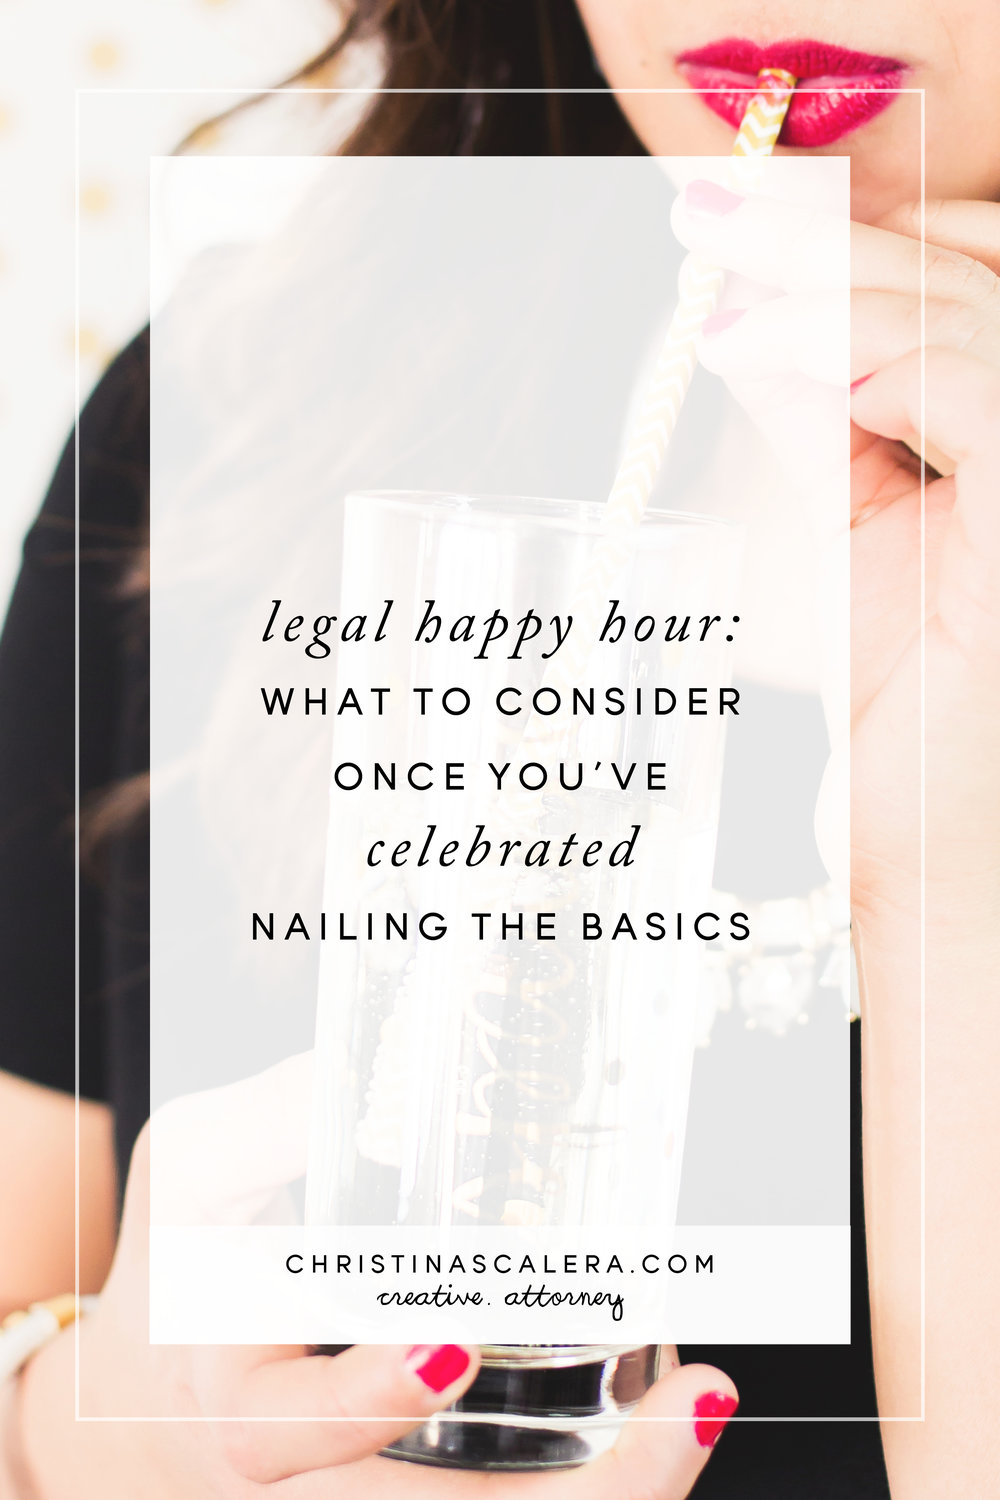 Legal happy hour! You've nailed the basics, now what?